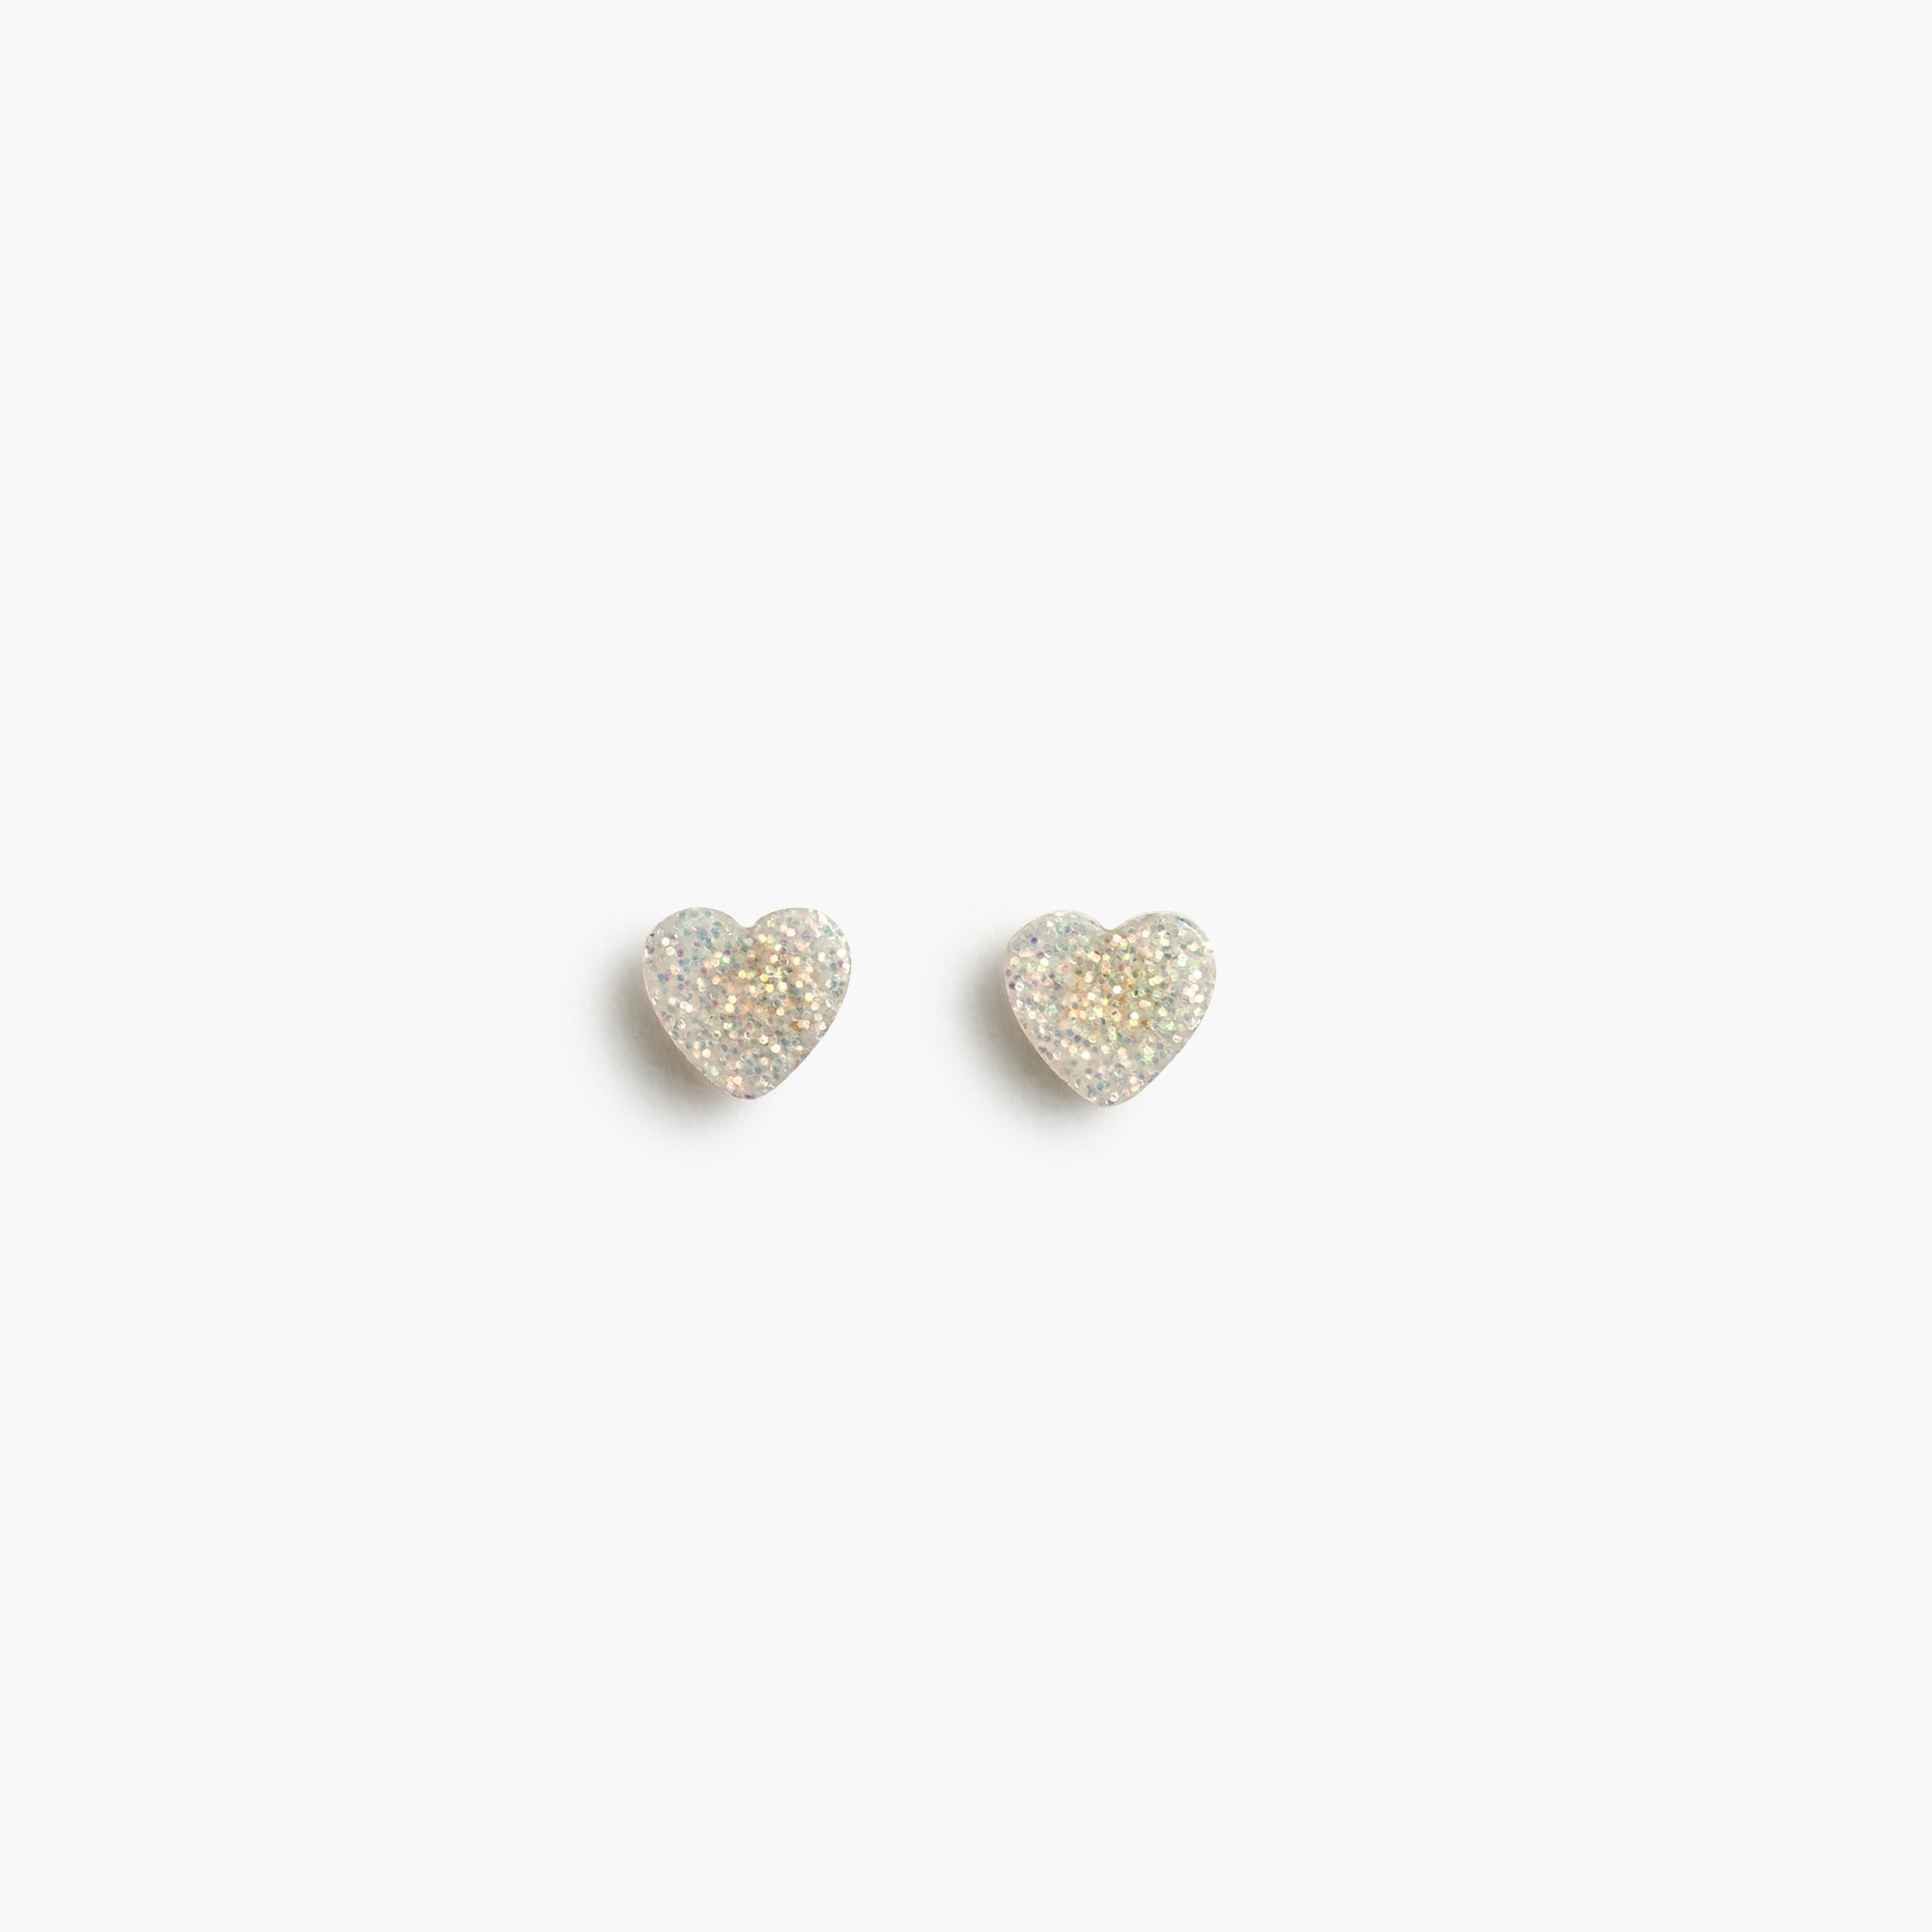 Girls' heart stud earrings girl jewelry & accessories c